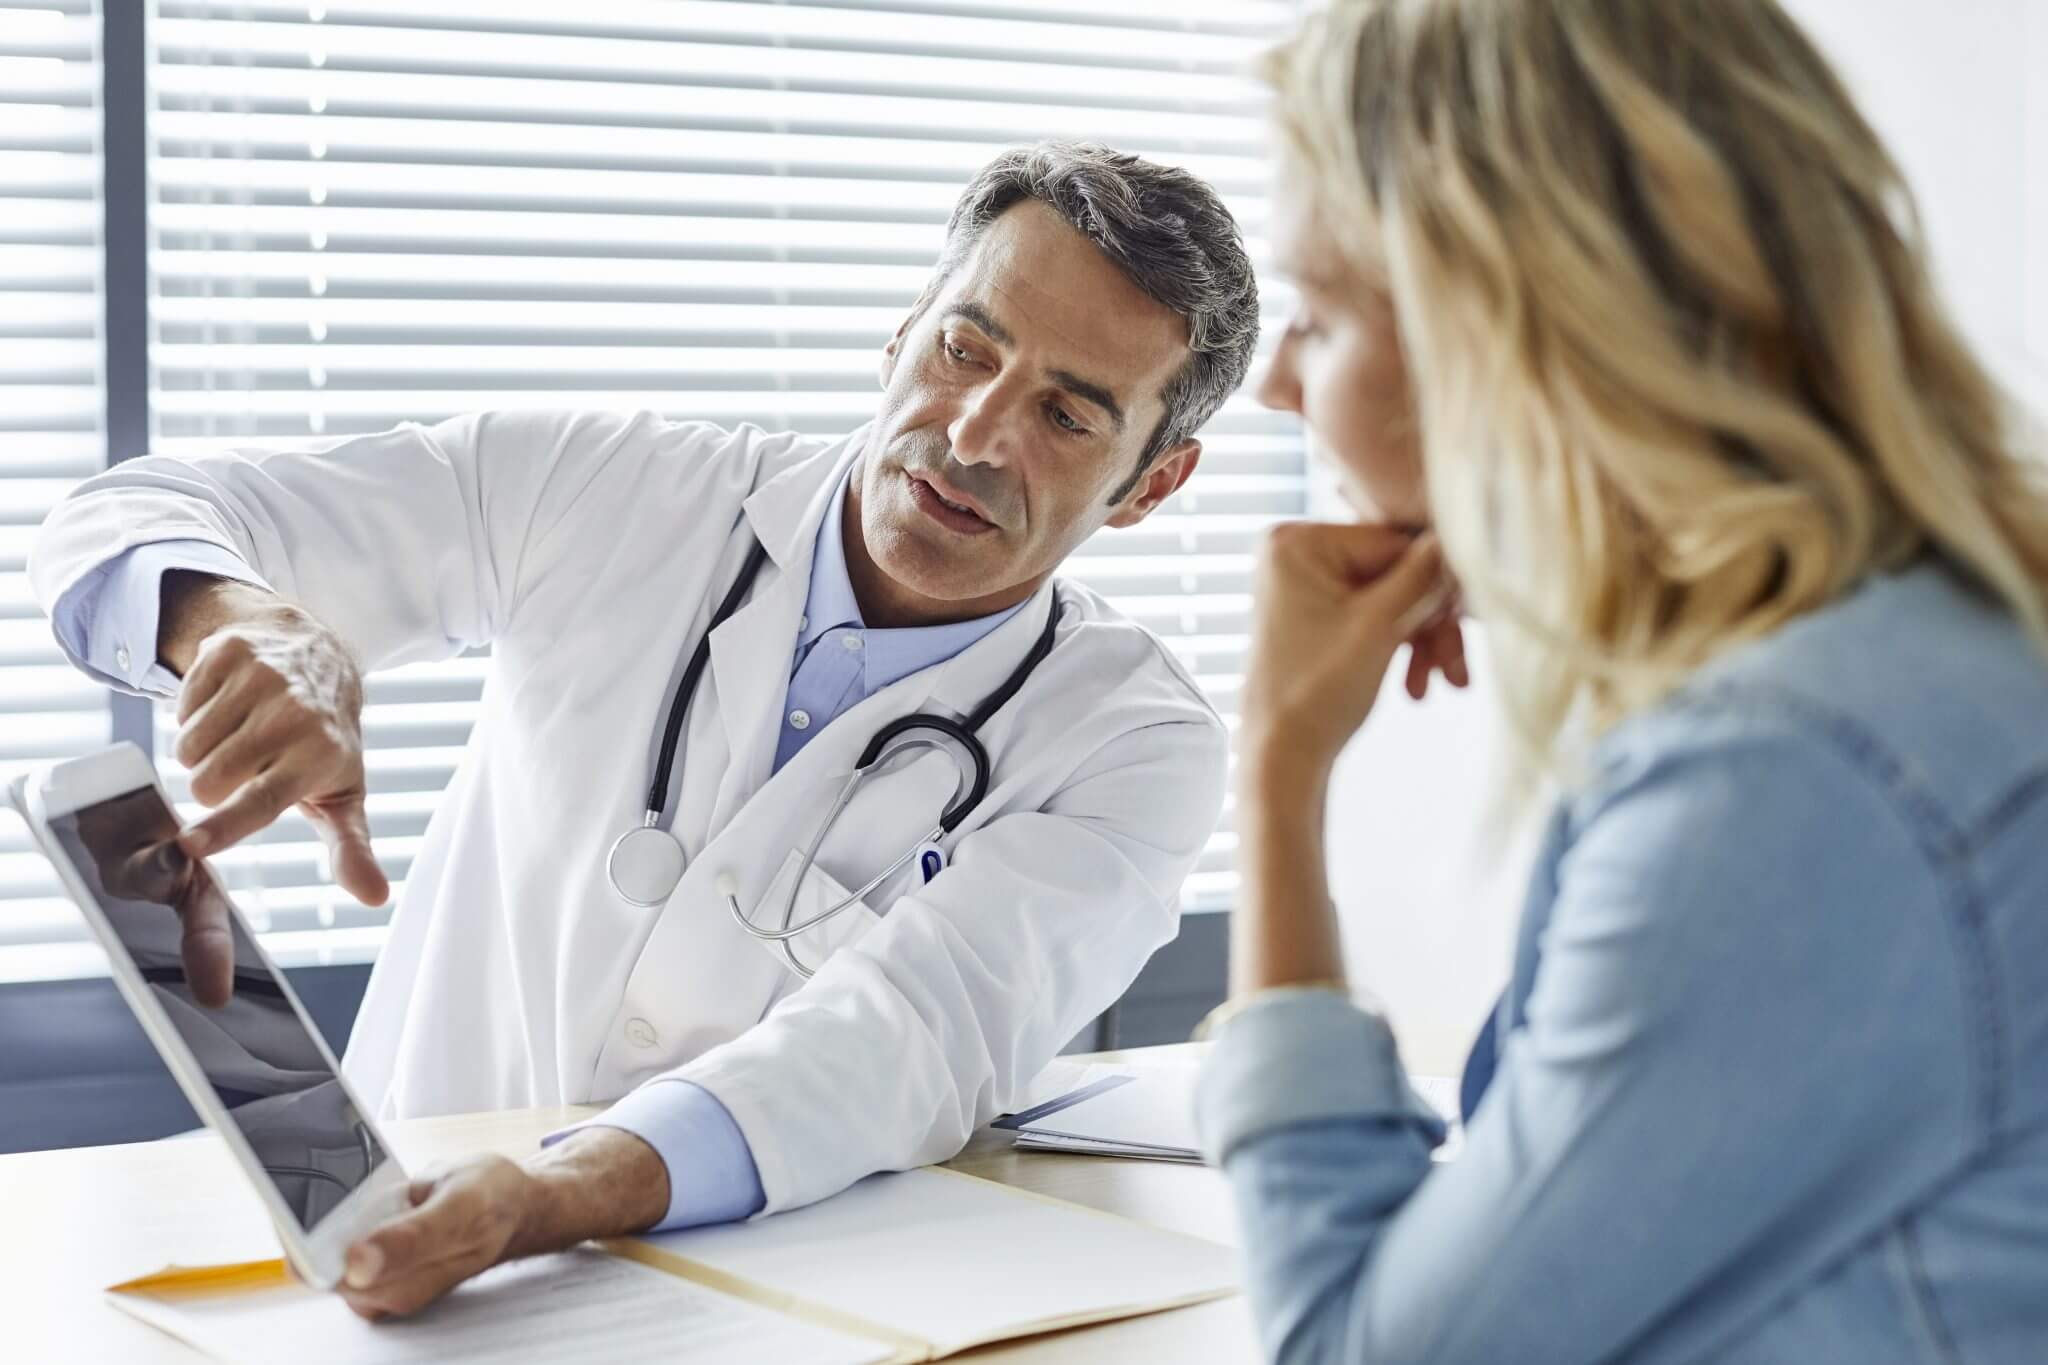 Getting A Second Doctor S Opinion Could Save Your Life